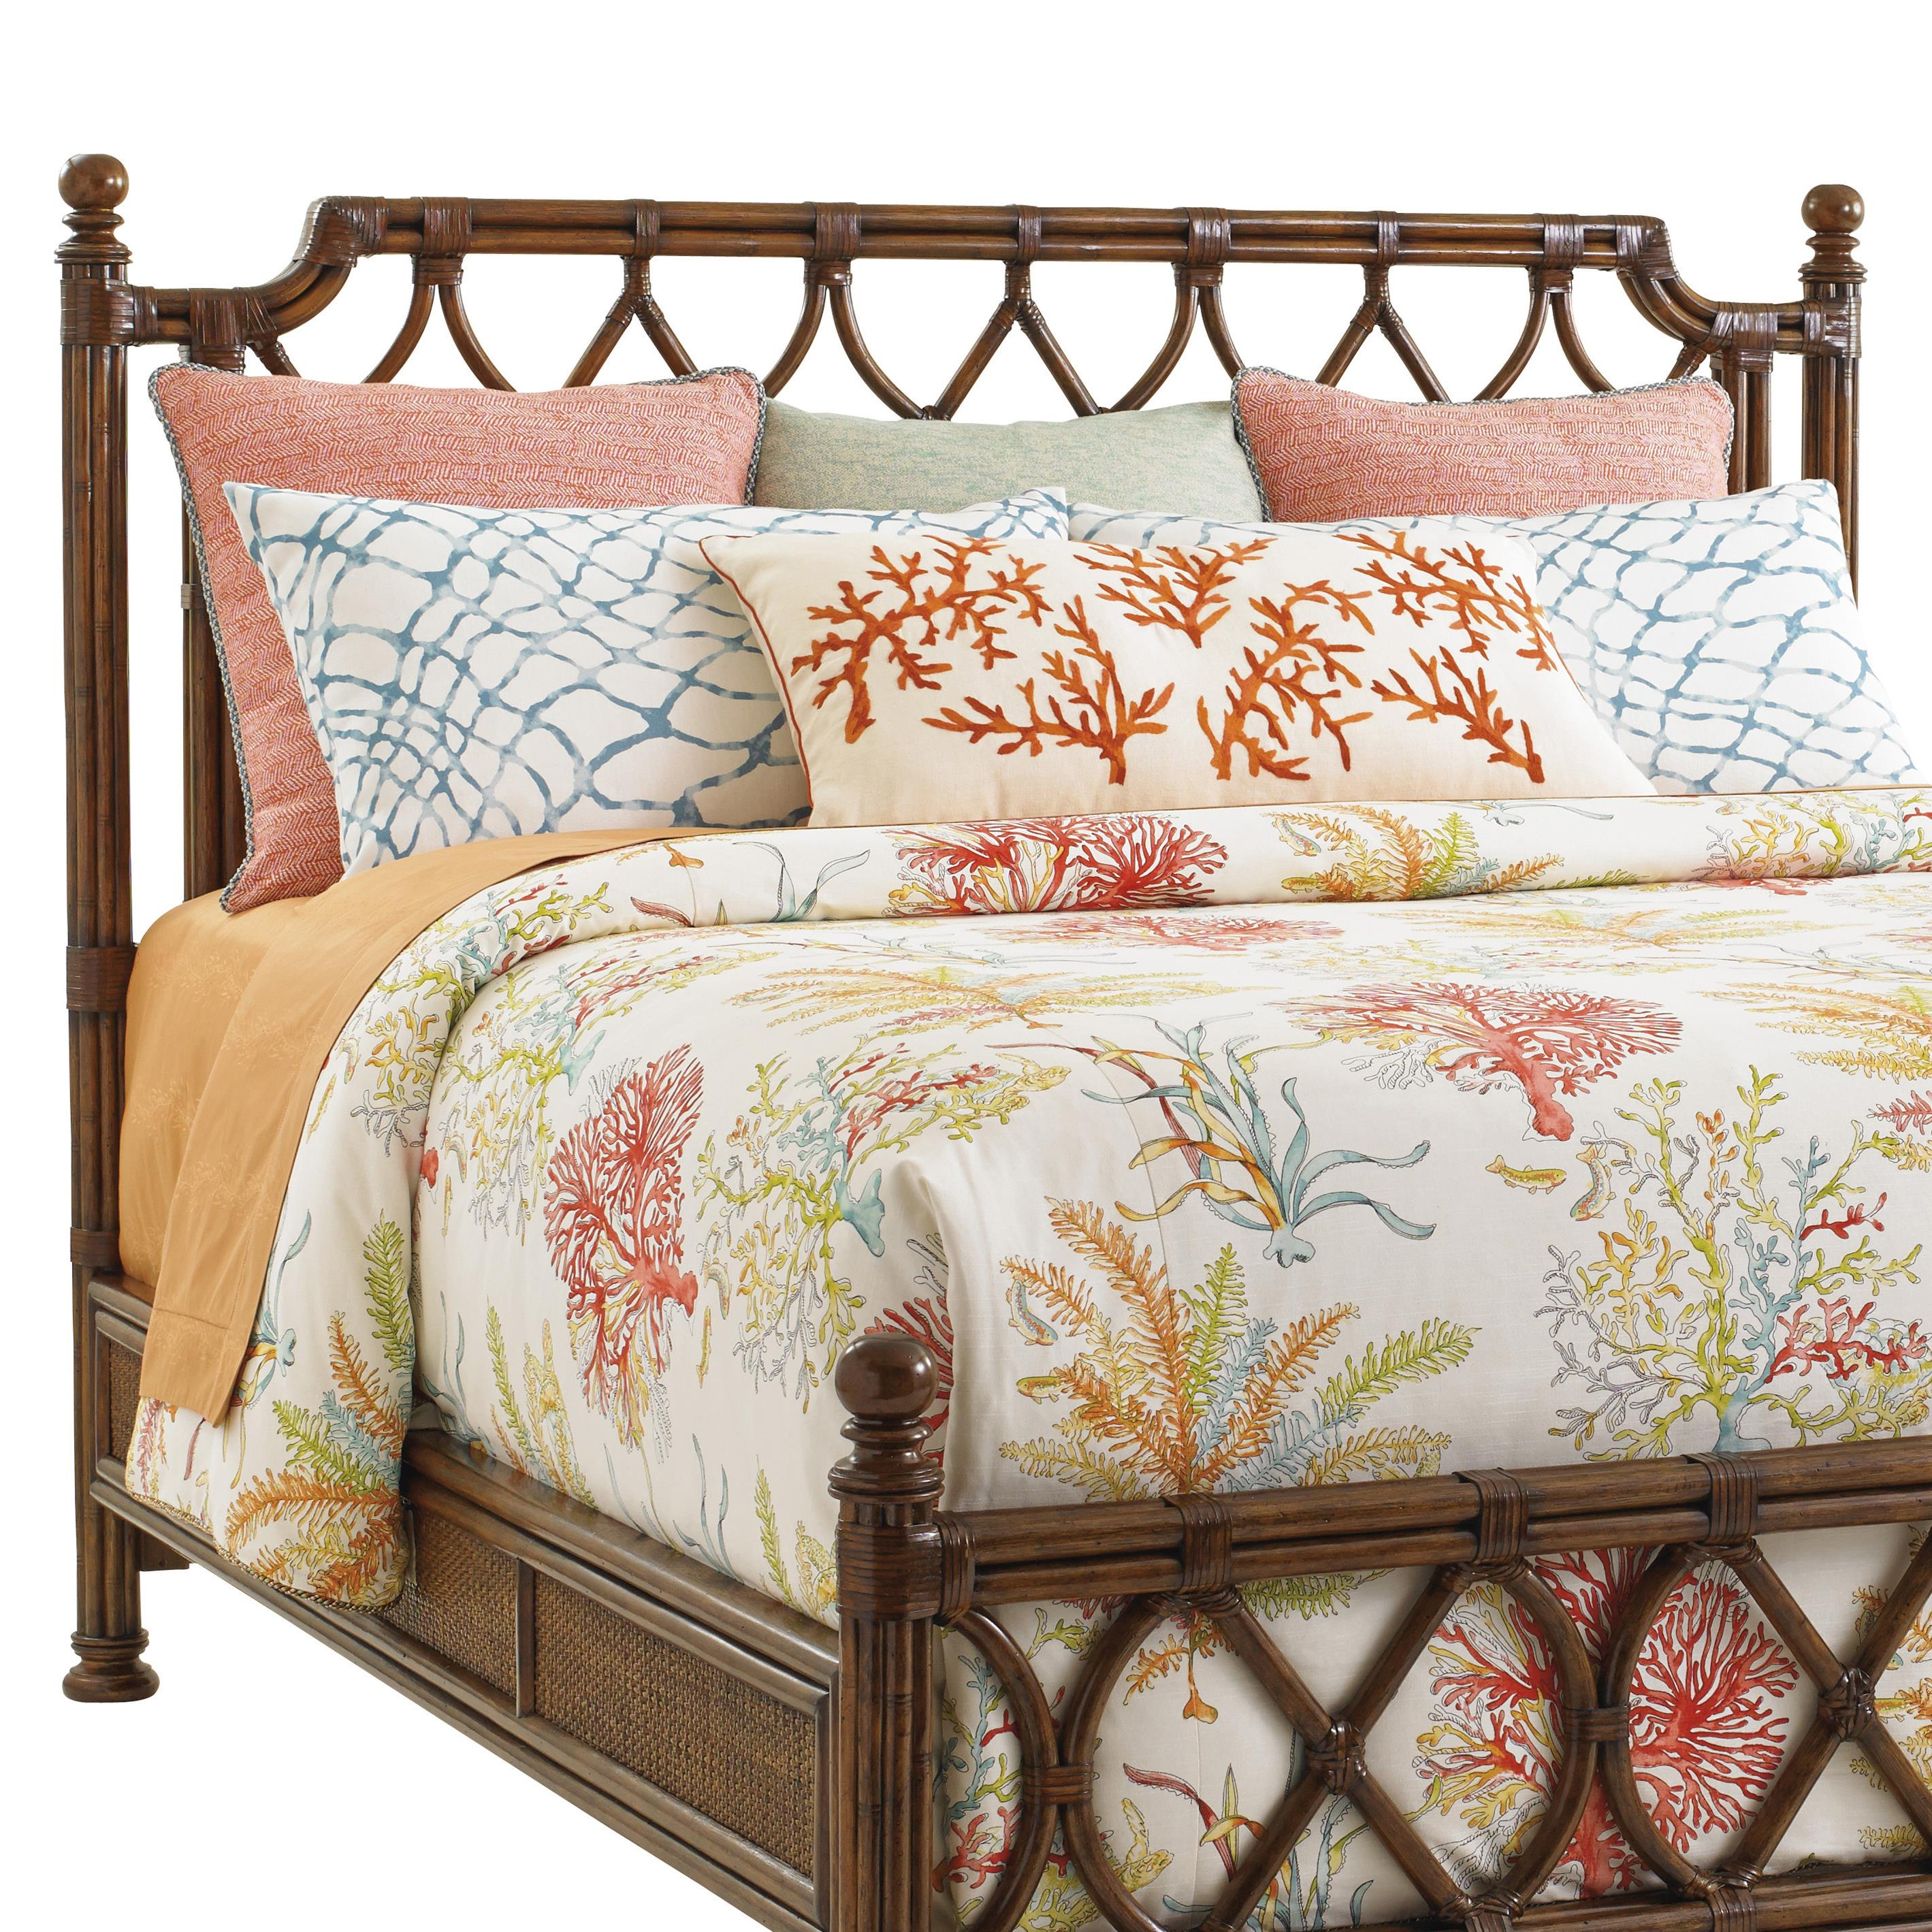 Bali Hai Island Breeze Rattan Headboard by Tommy Bahama Home at Baer's Furniture